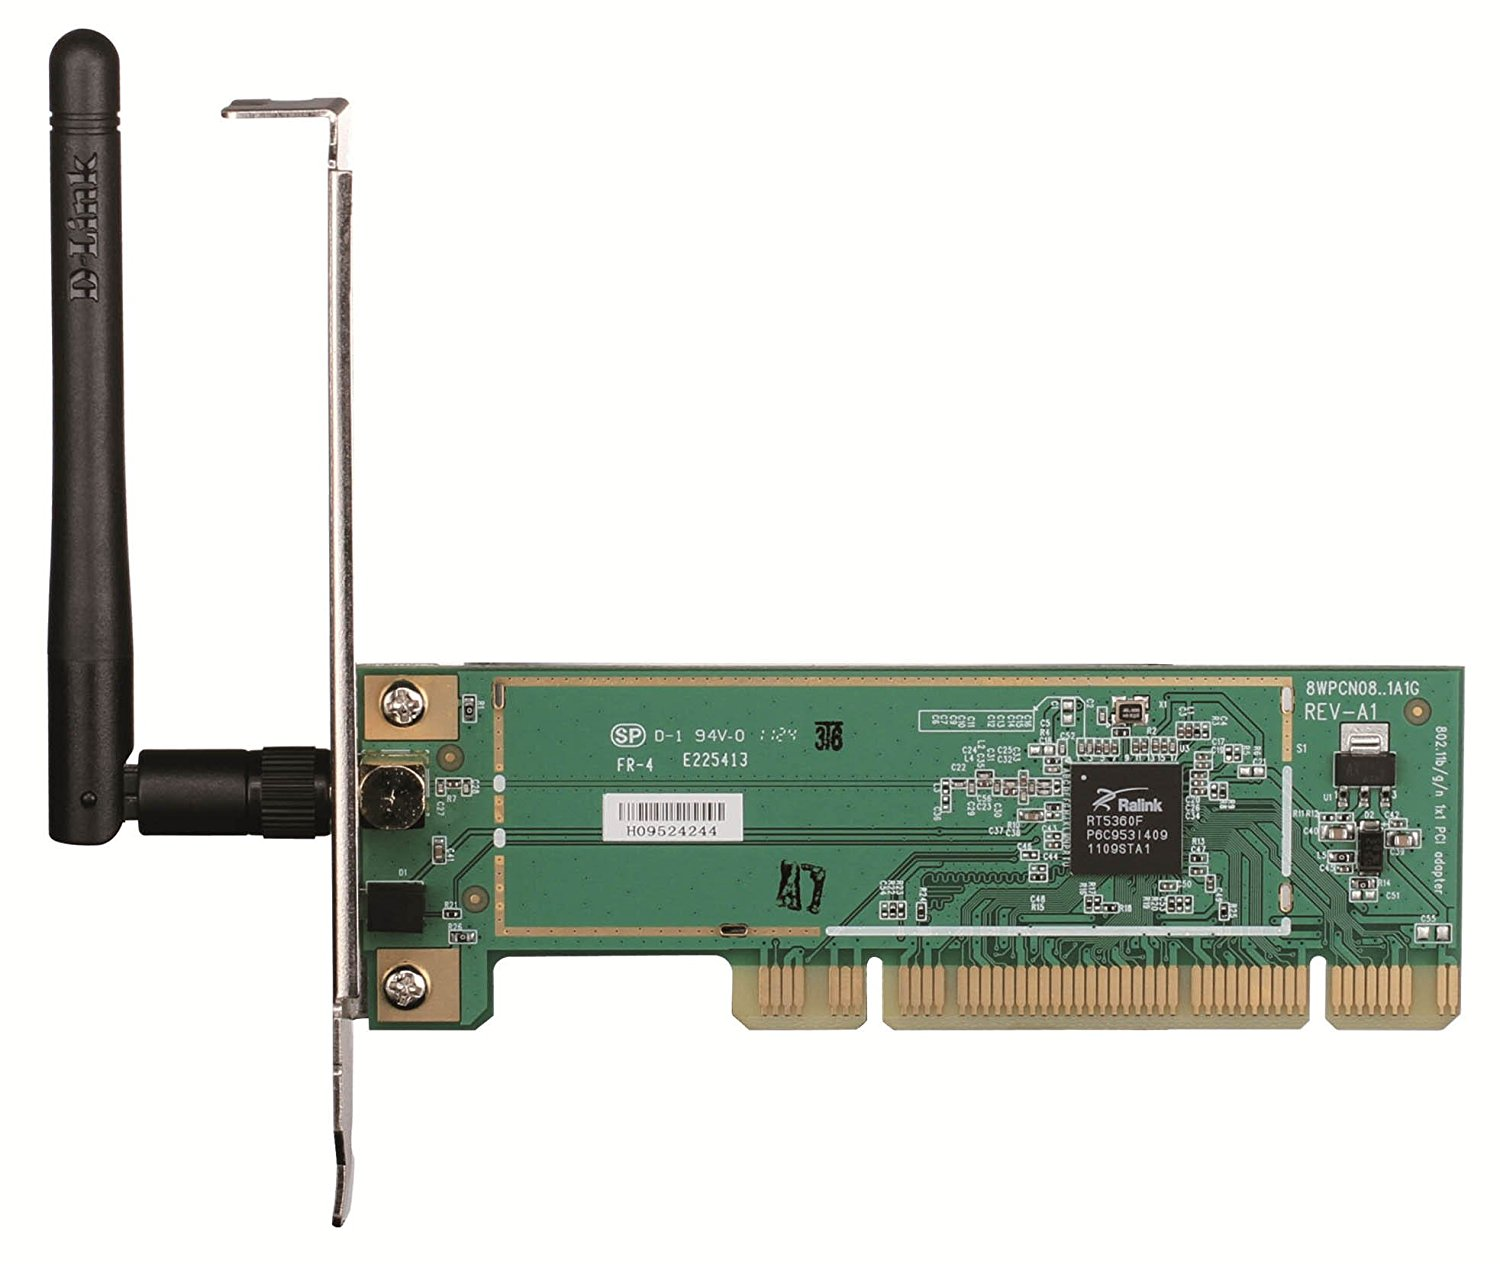 D-LINK DWA-525 REVA DRIVER DOWNLOAD